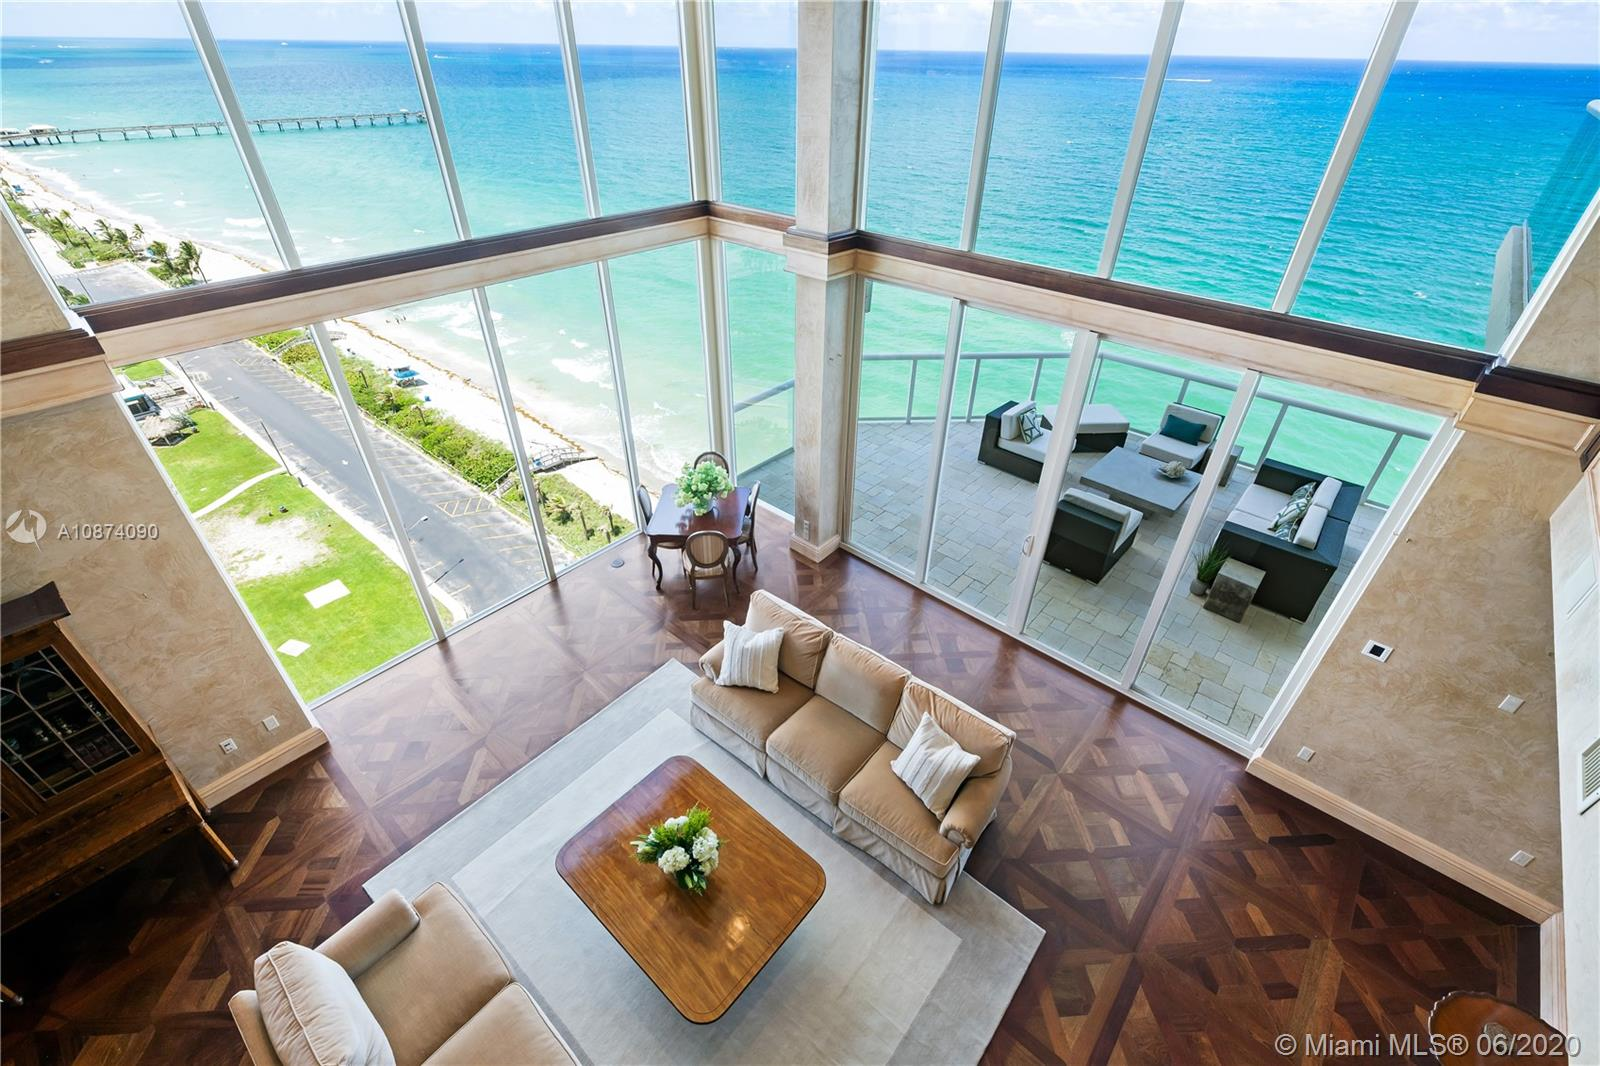 Photo of 6051 Ocean Dr #PH5, Hollywood, Florida, 33019 - Views from upstairs landing to living room